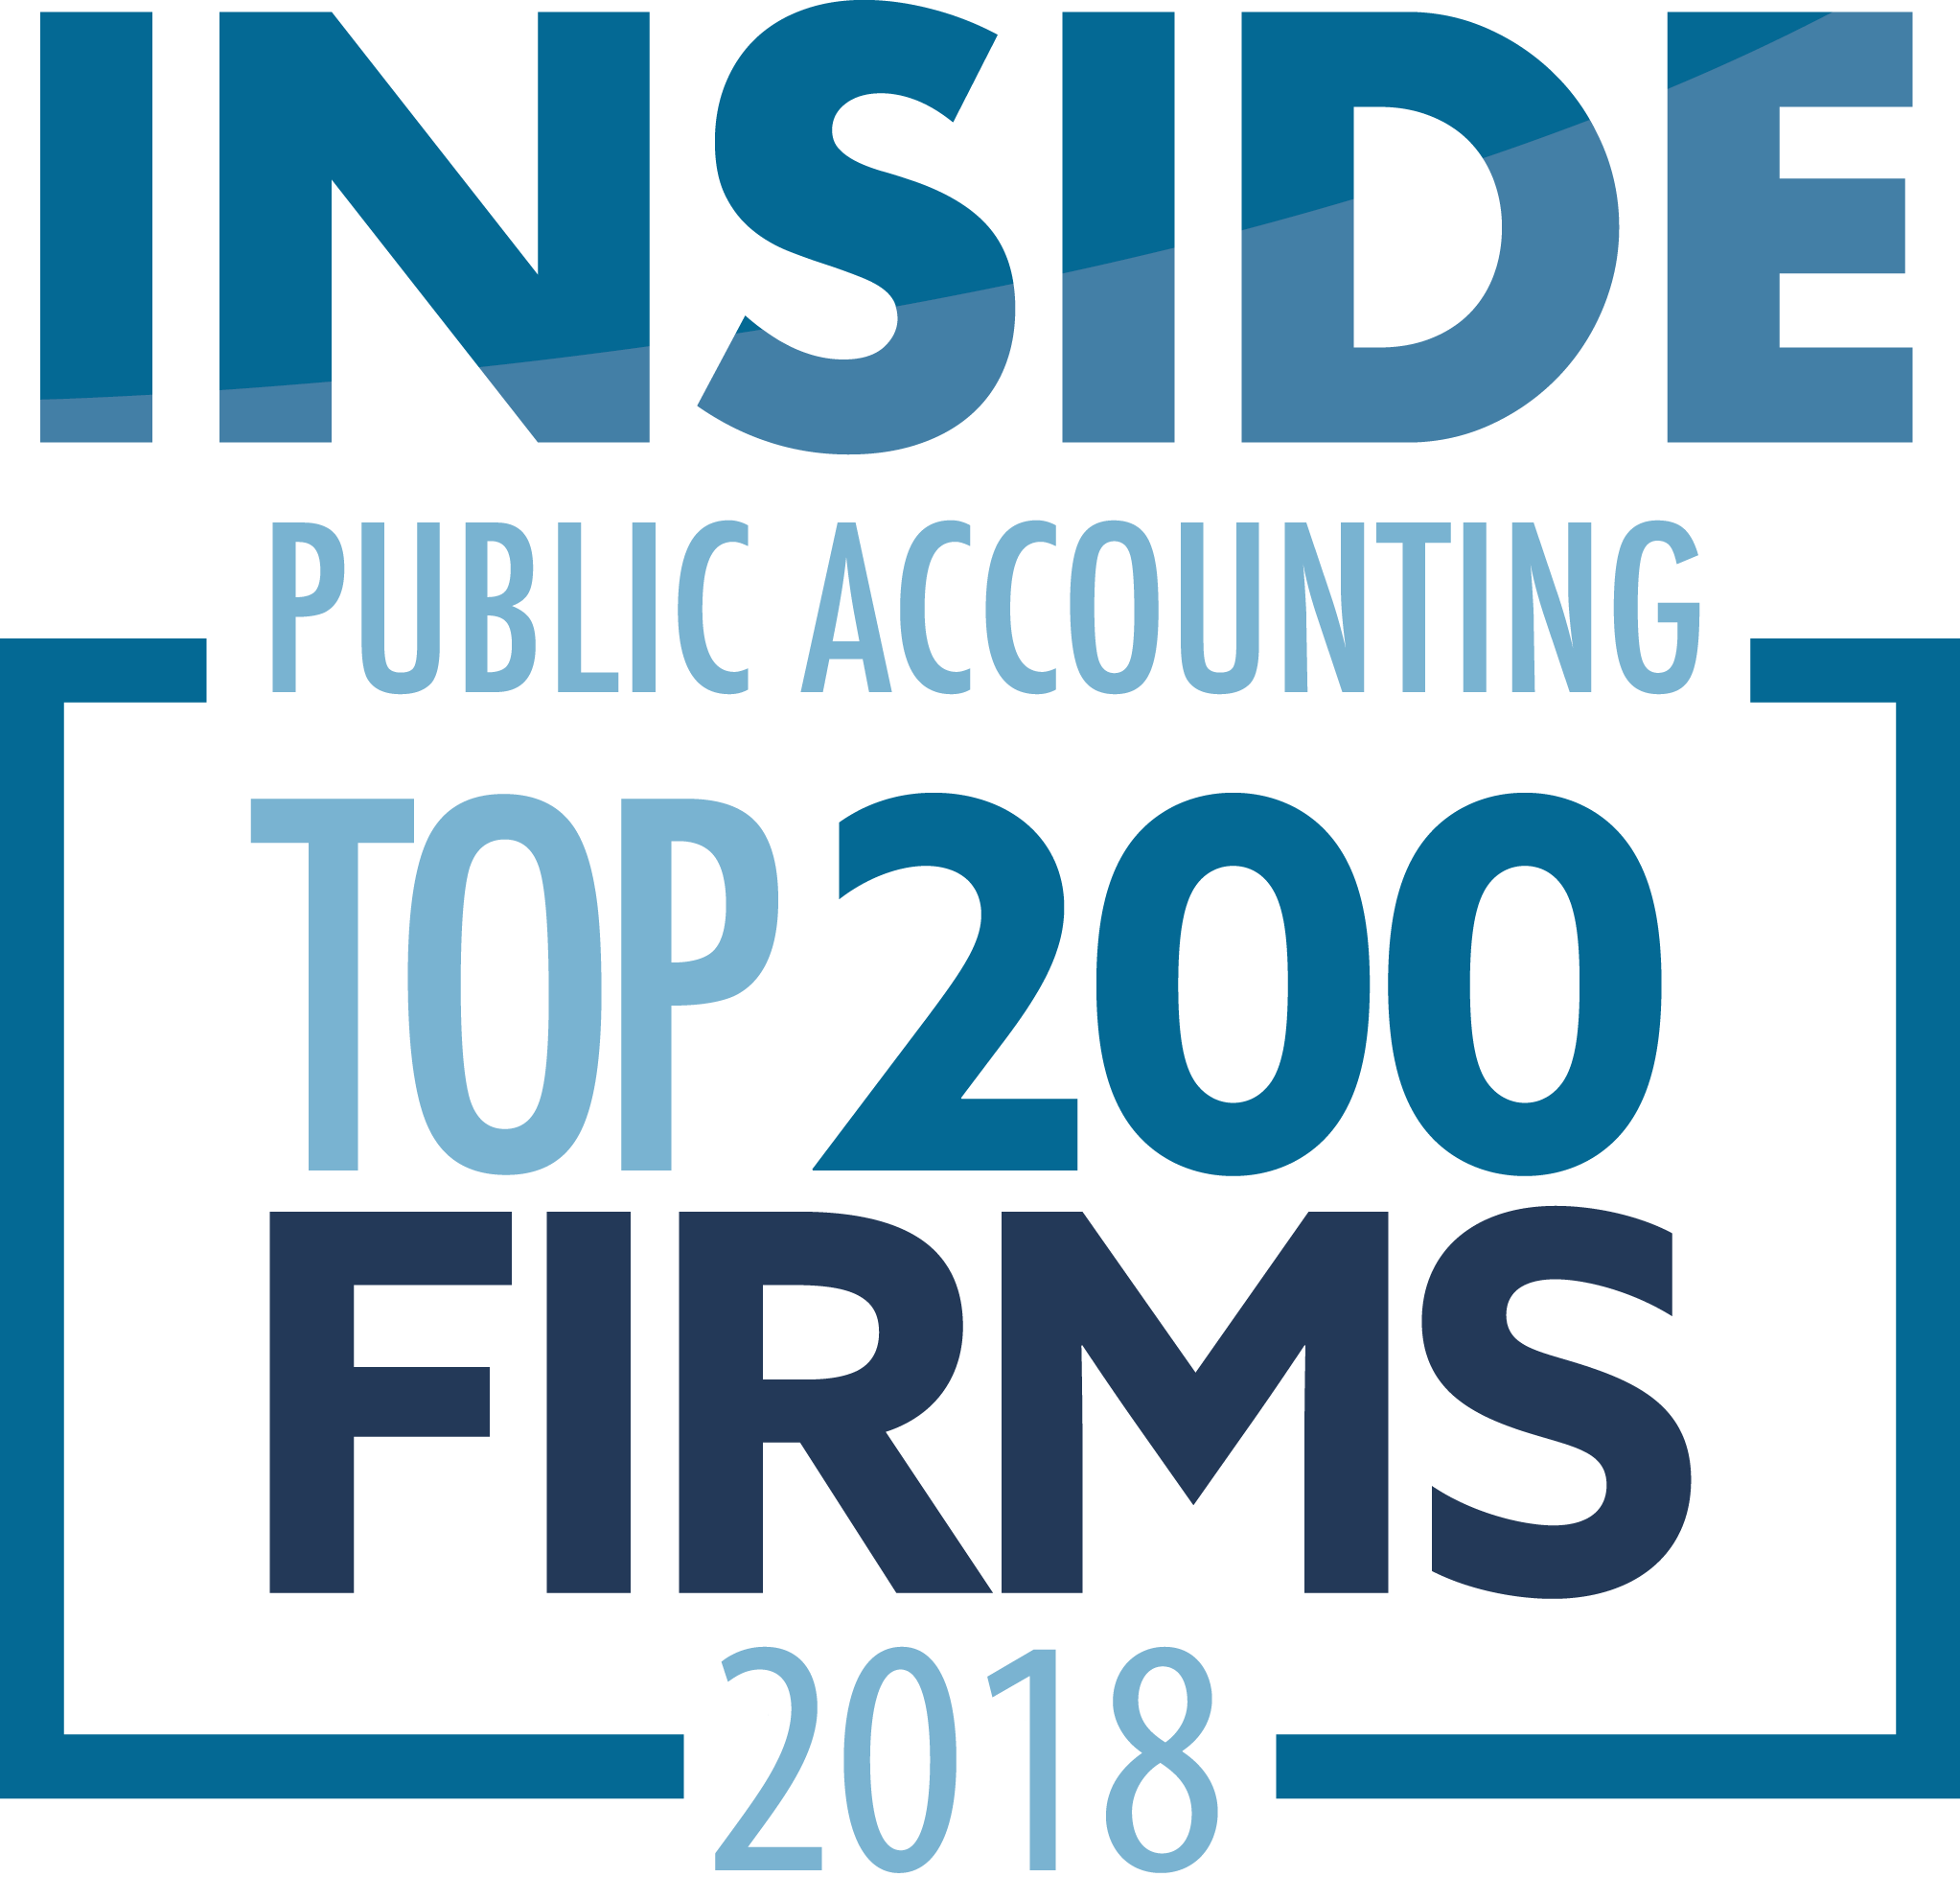 Congratulations to the 2018 IPA 200 and 300 Firms